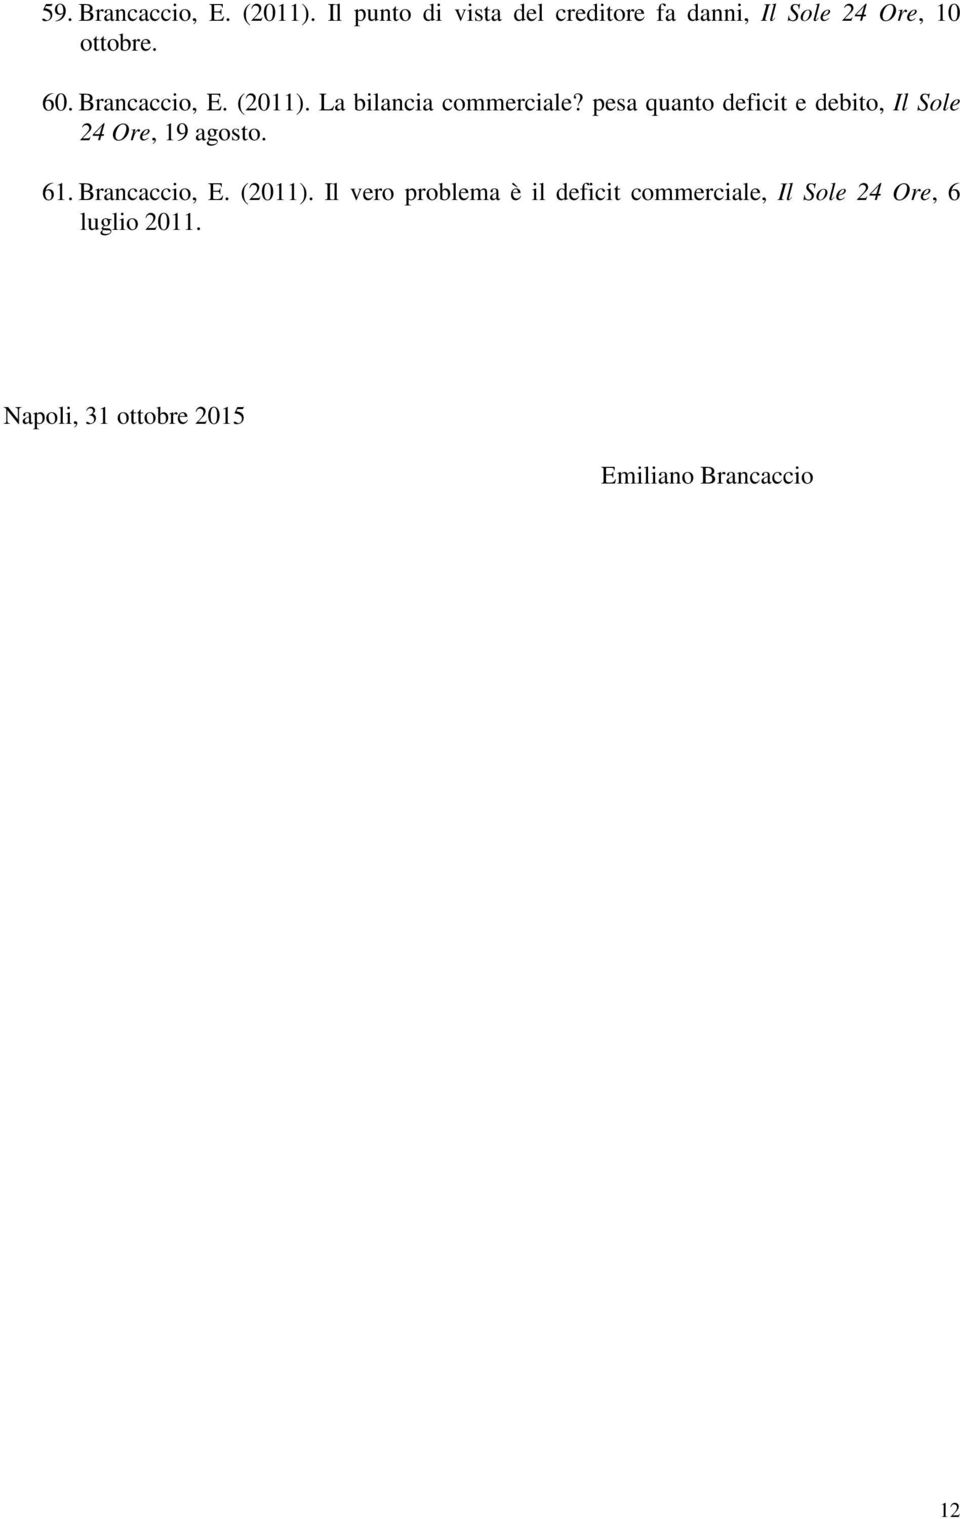 Sample cover letter for media relations job picture 1